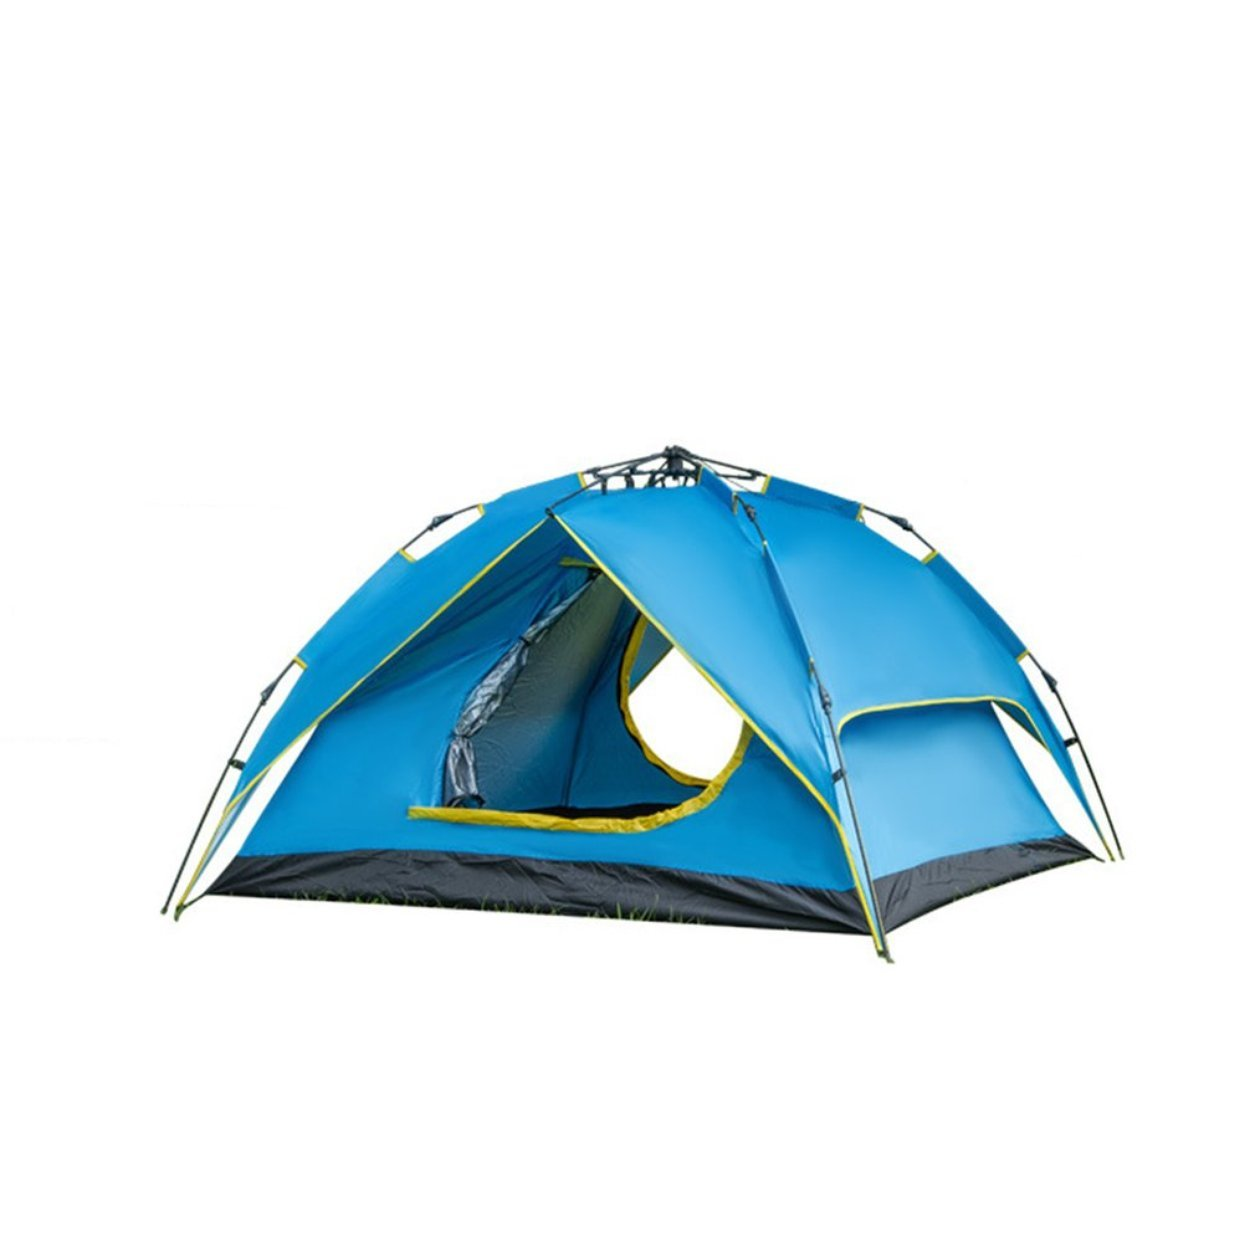 Dailyinshop Tragbare 4 Person Double Layer Instant Pop up Camping Zelt Outdoor Shelter (Farbe: Blau)